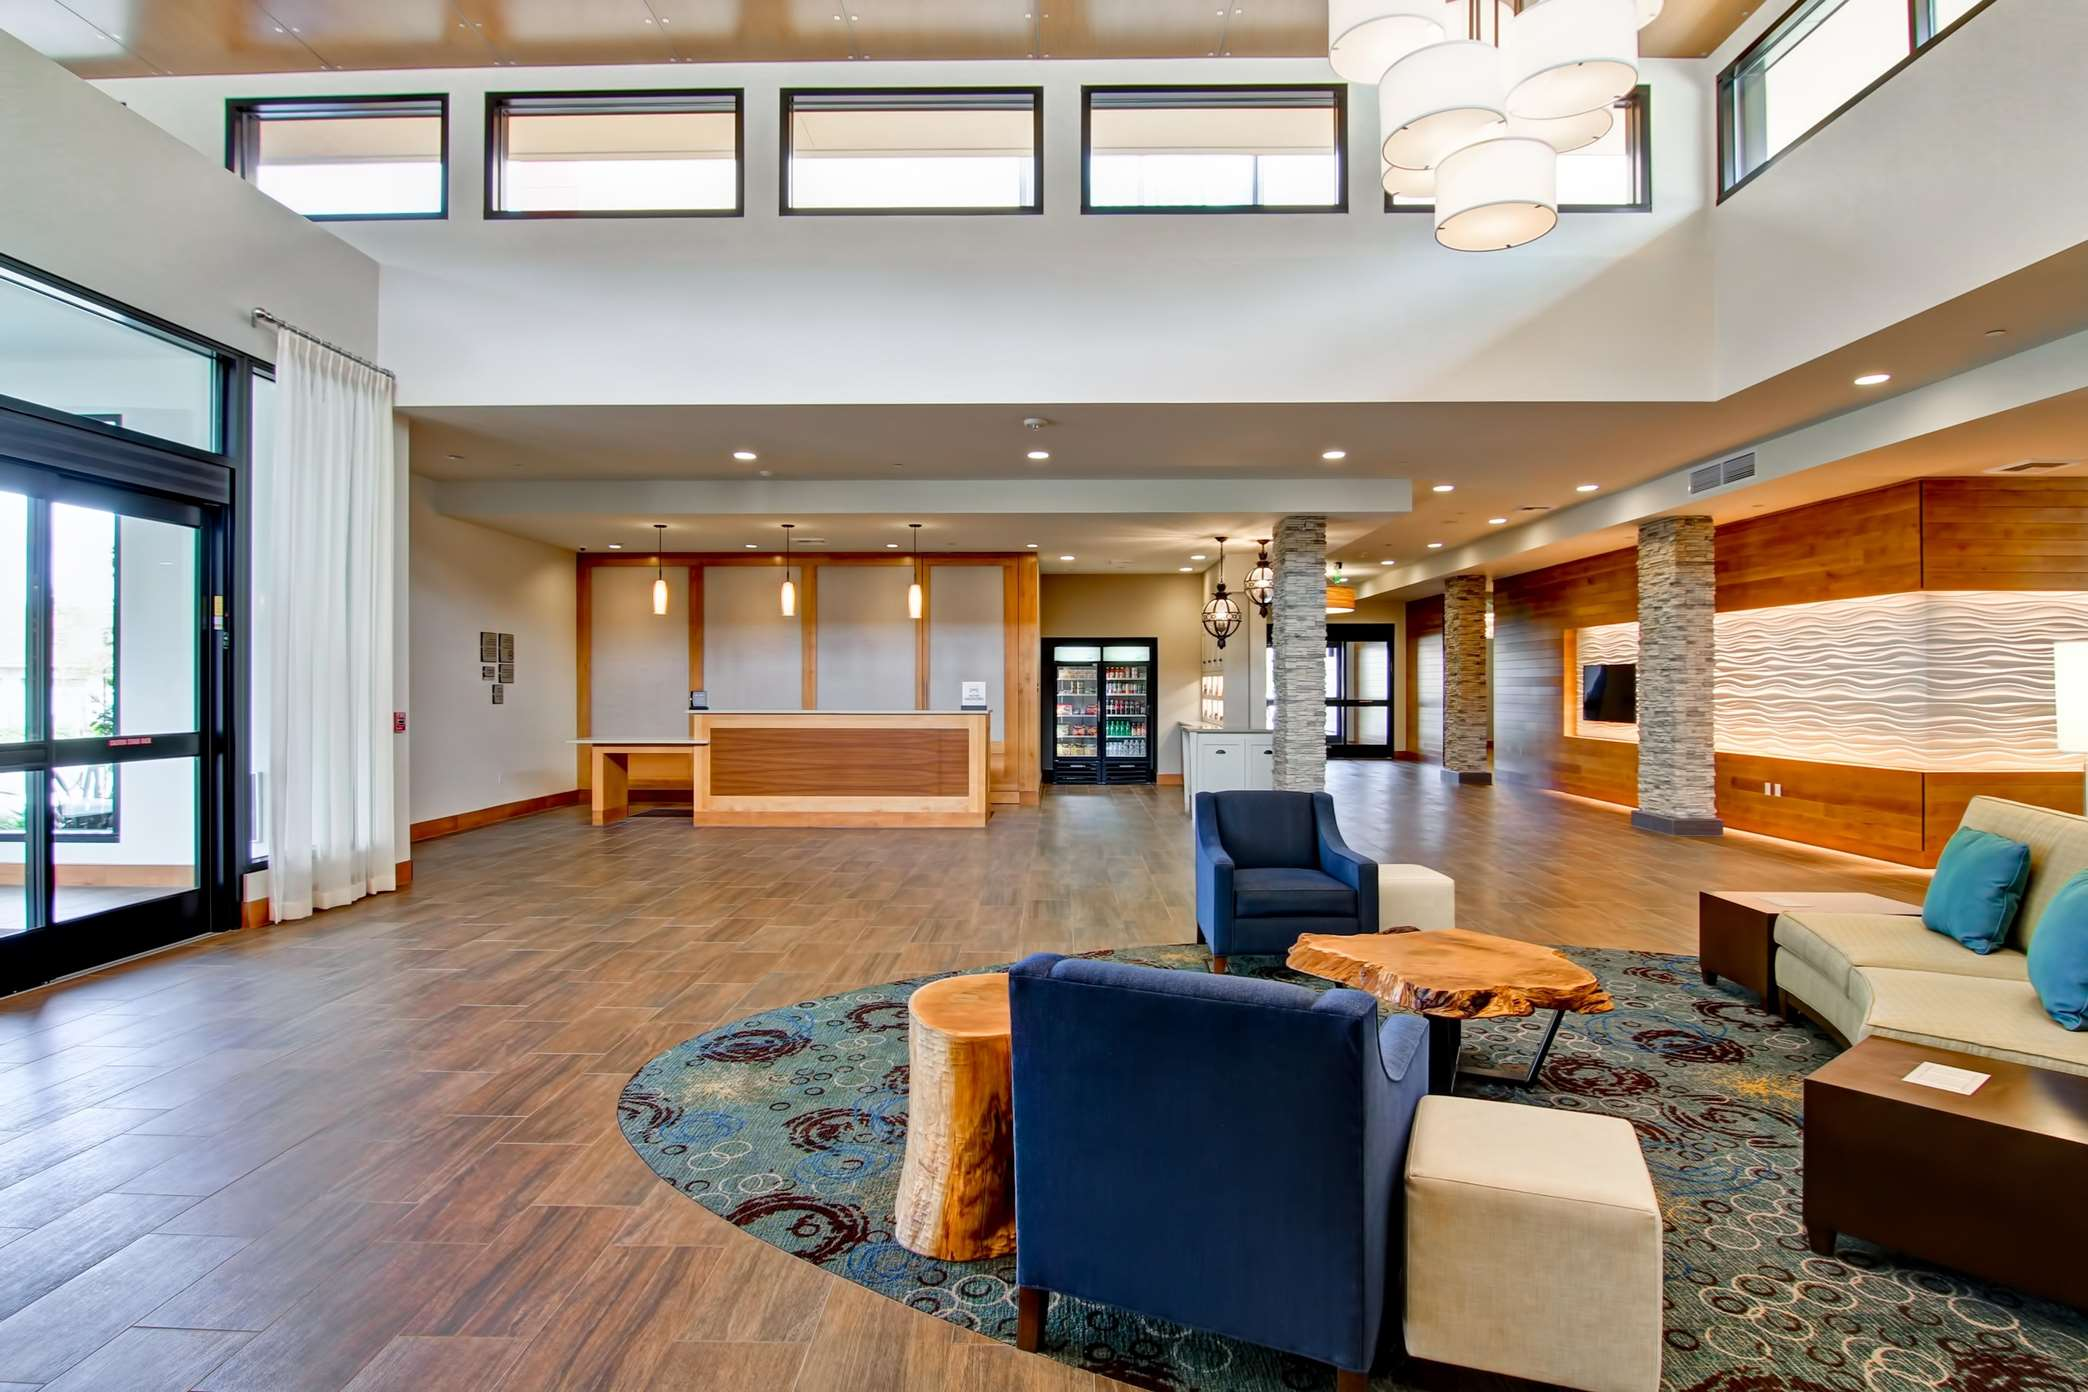 Homewood Suites by Hilton Seattle-Issaquah image 3